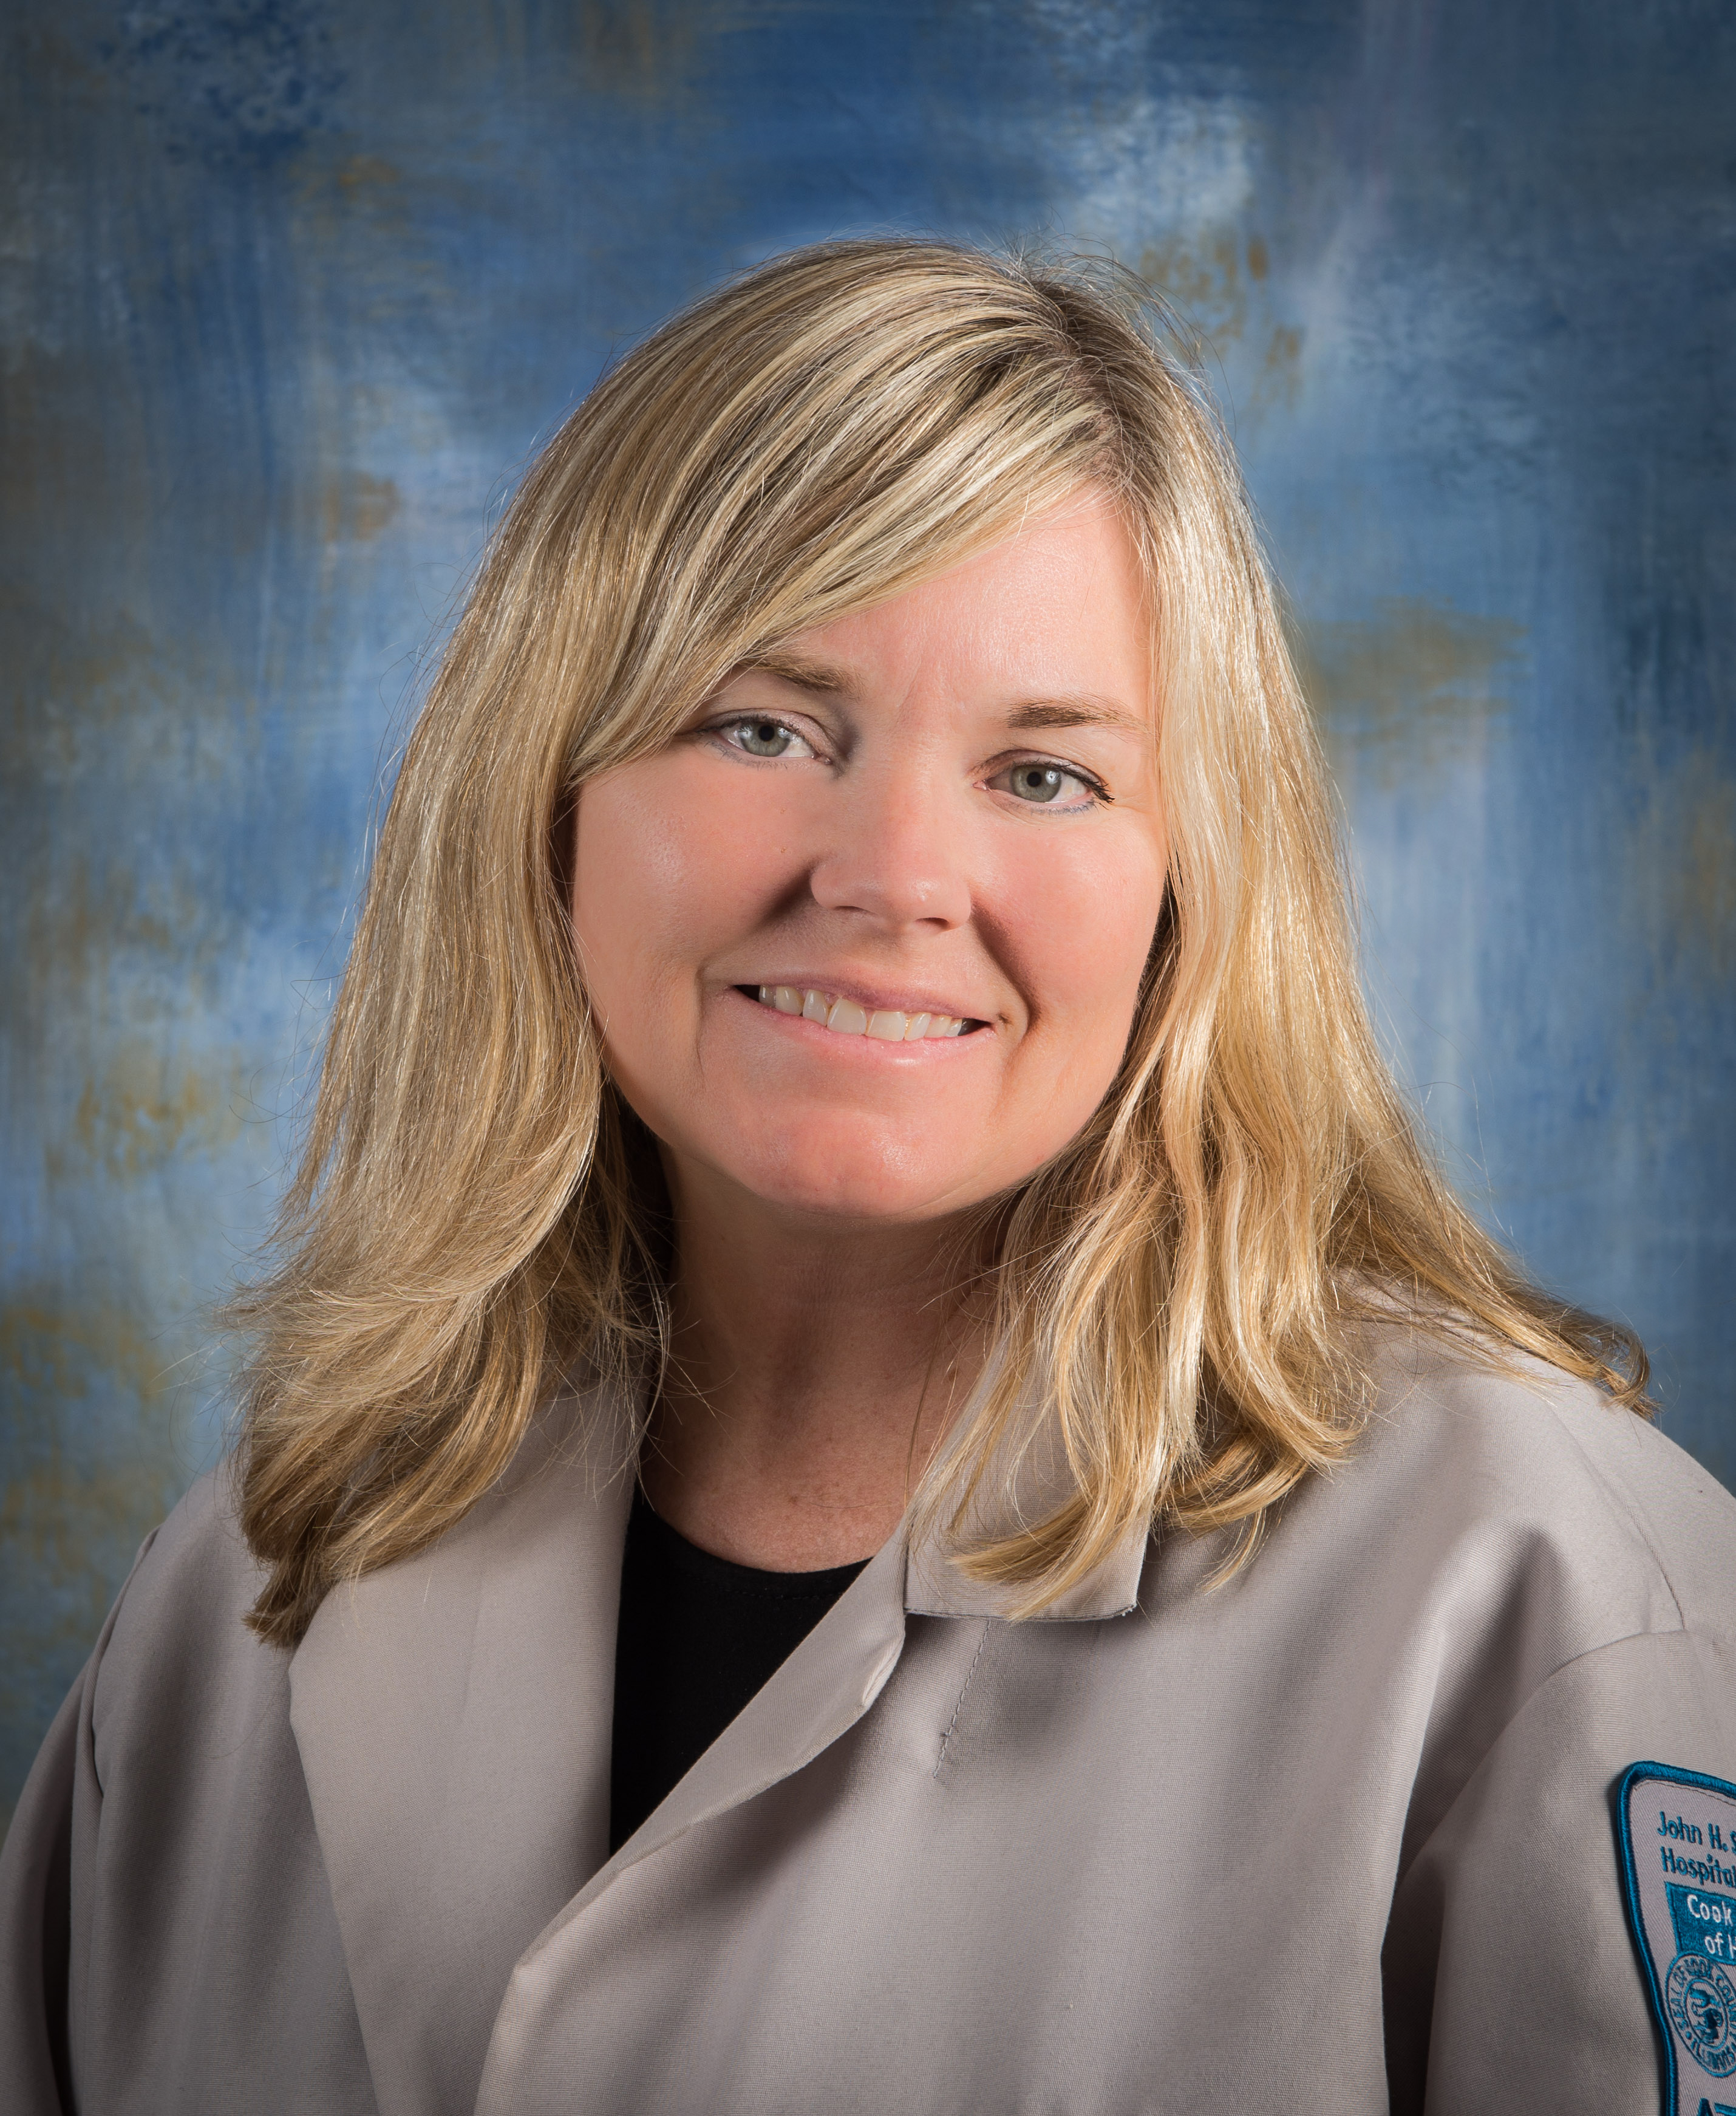 Colleen M. Buhrfiend, MD